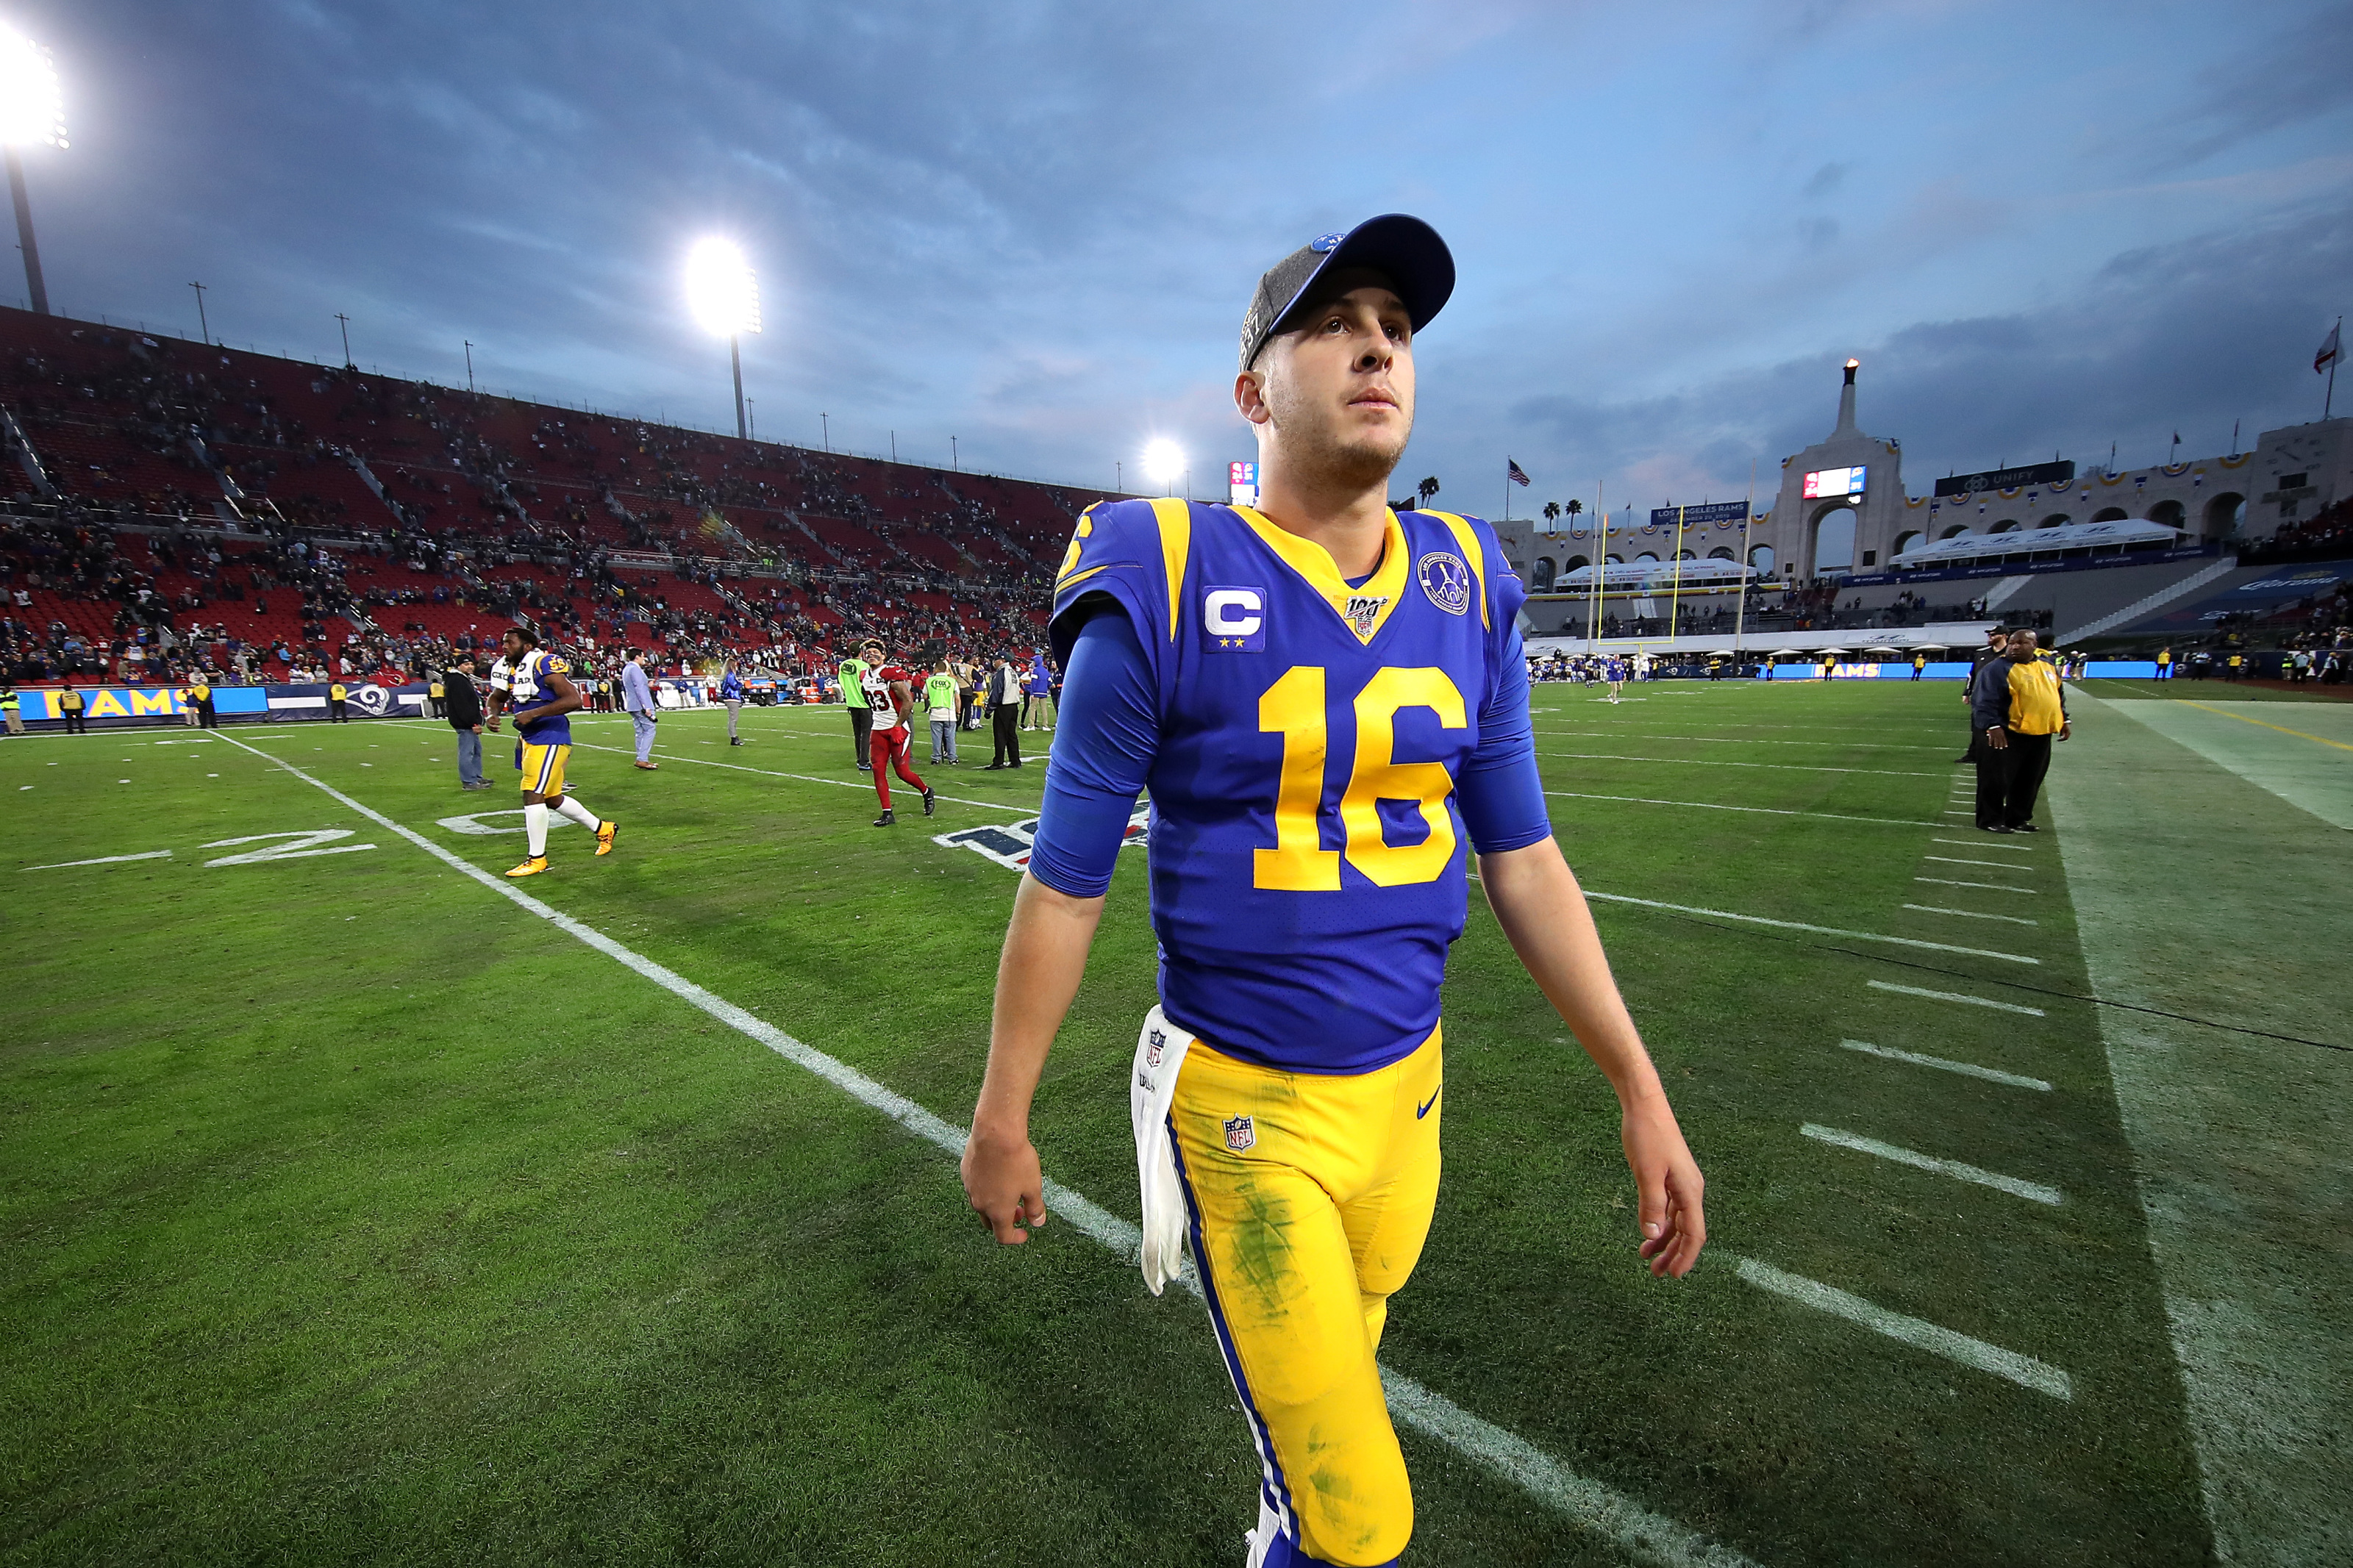 Los Angeles Rams The Weight Of The Franchise Now Lies On Jared Goff